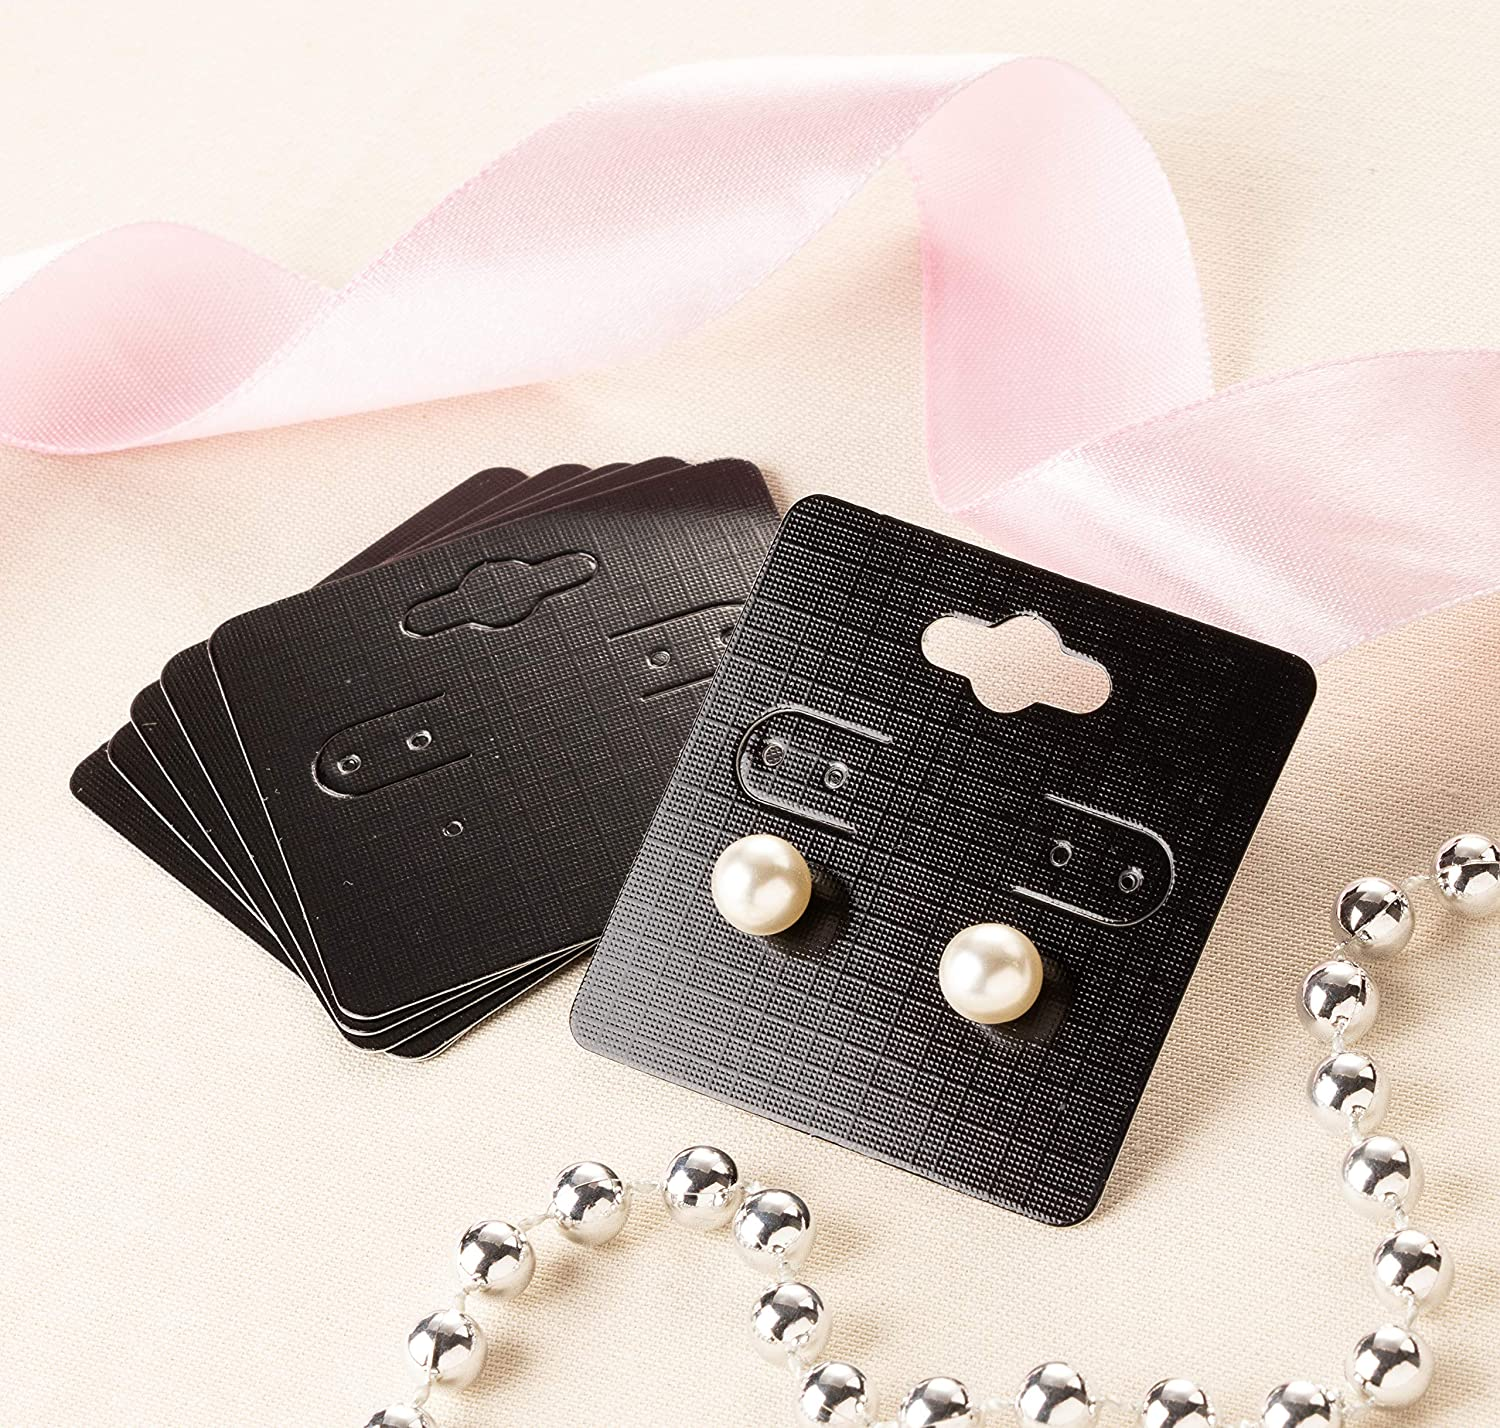 Earring Cards 2 x 2 Inches Ear Studs Paper Jewelry Display Cards for Earrings 200-Pack Hanging Earring Card Holder Black